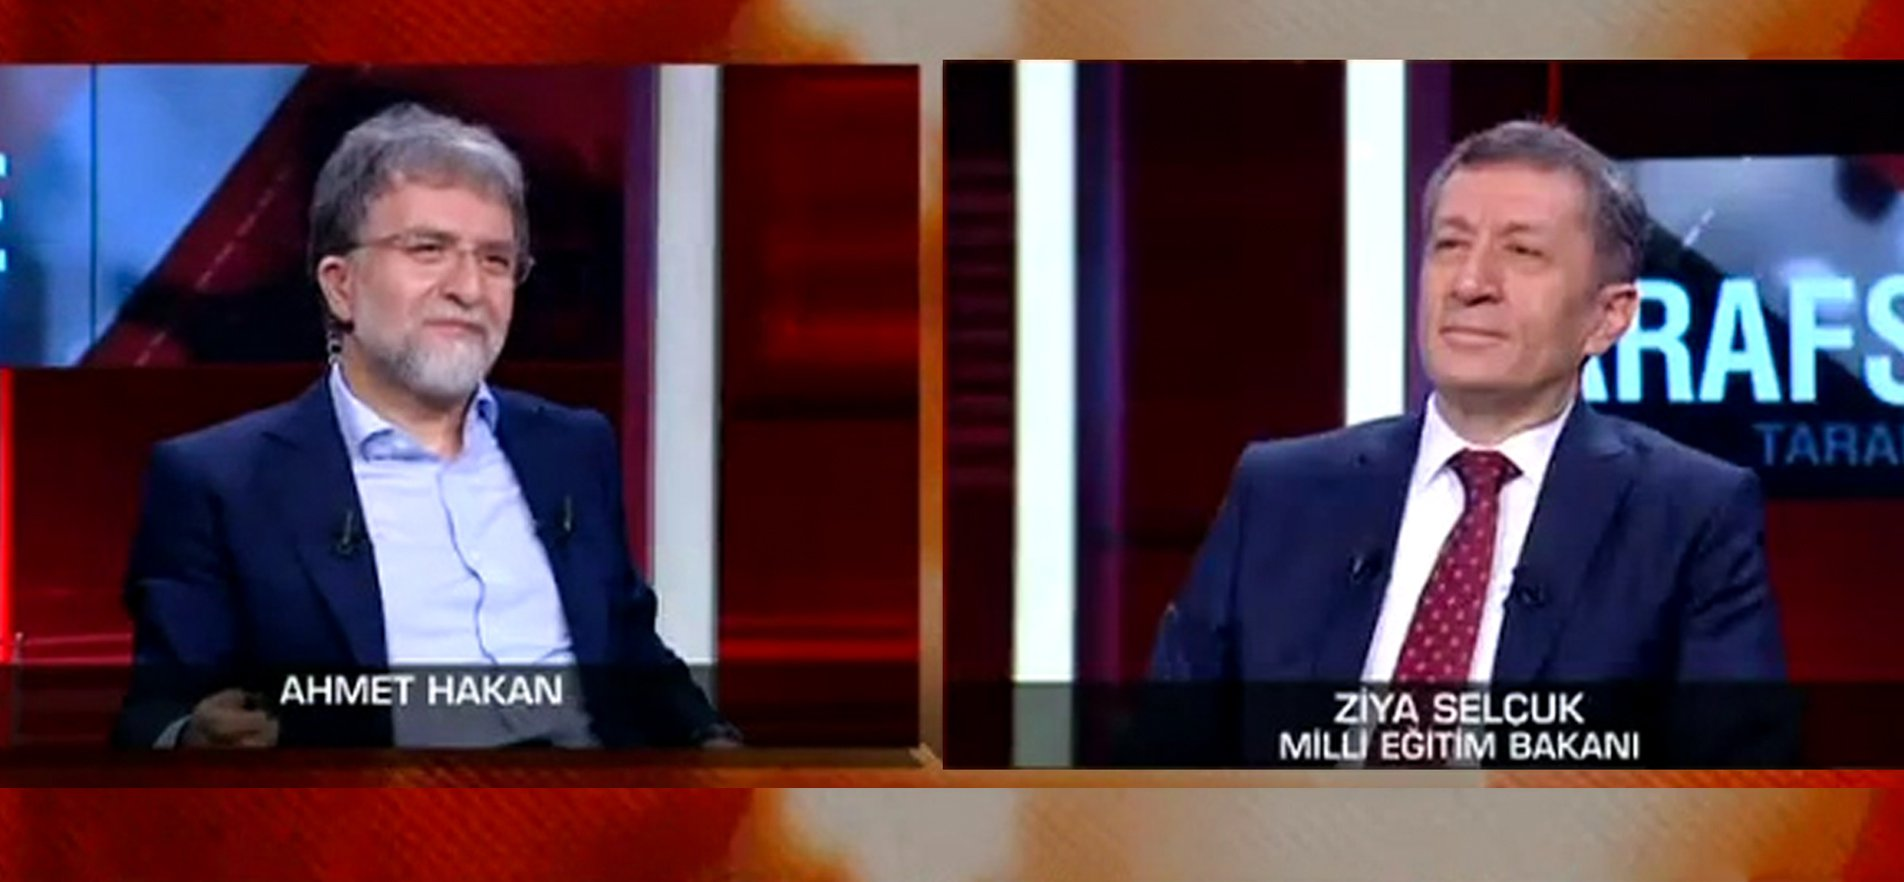 MINISTER SELÇUK ANSWERED QUESTIONS ABOUT EDUCATION IN A CNN TURK TV PROGRAM